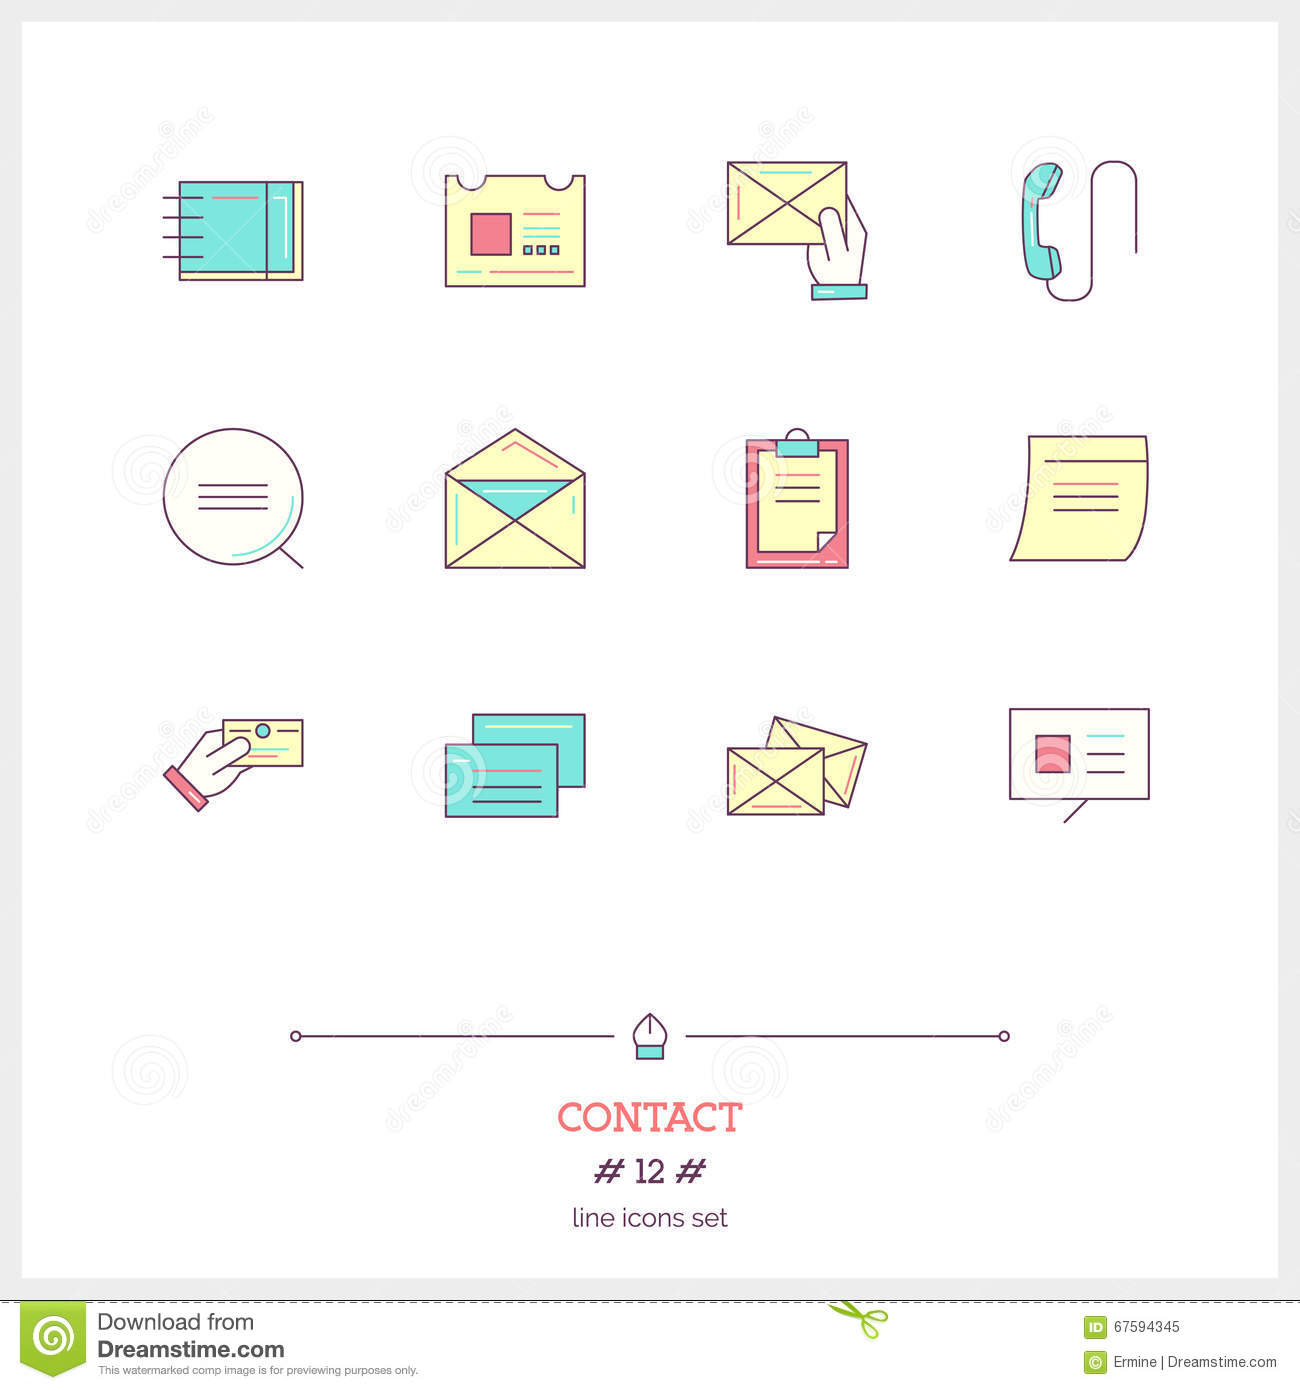 Line Color Form : Color line icon set of contact form information objects